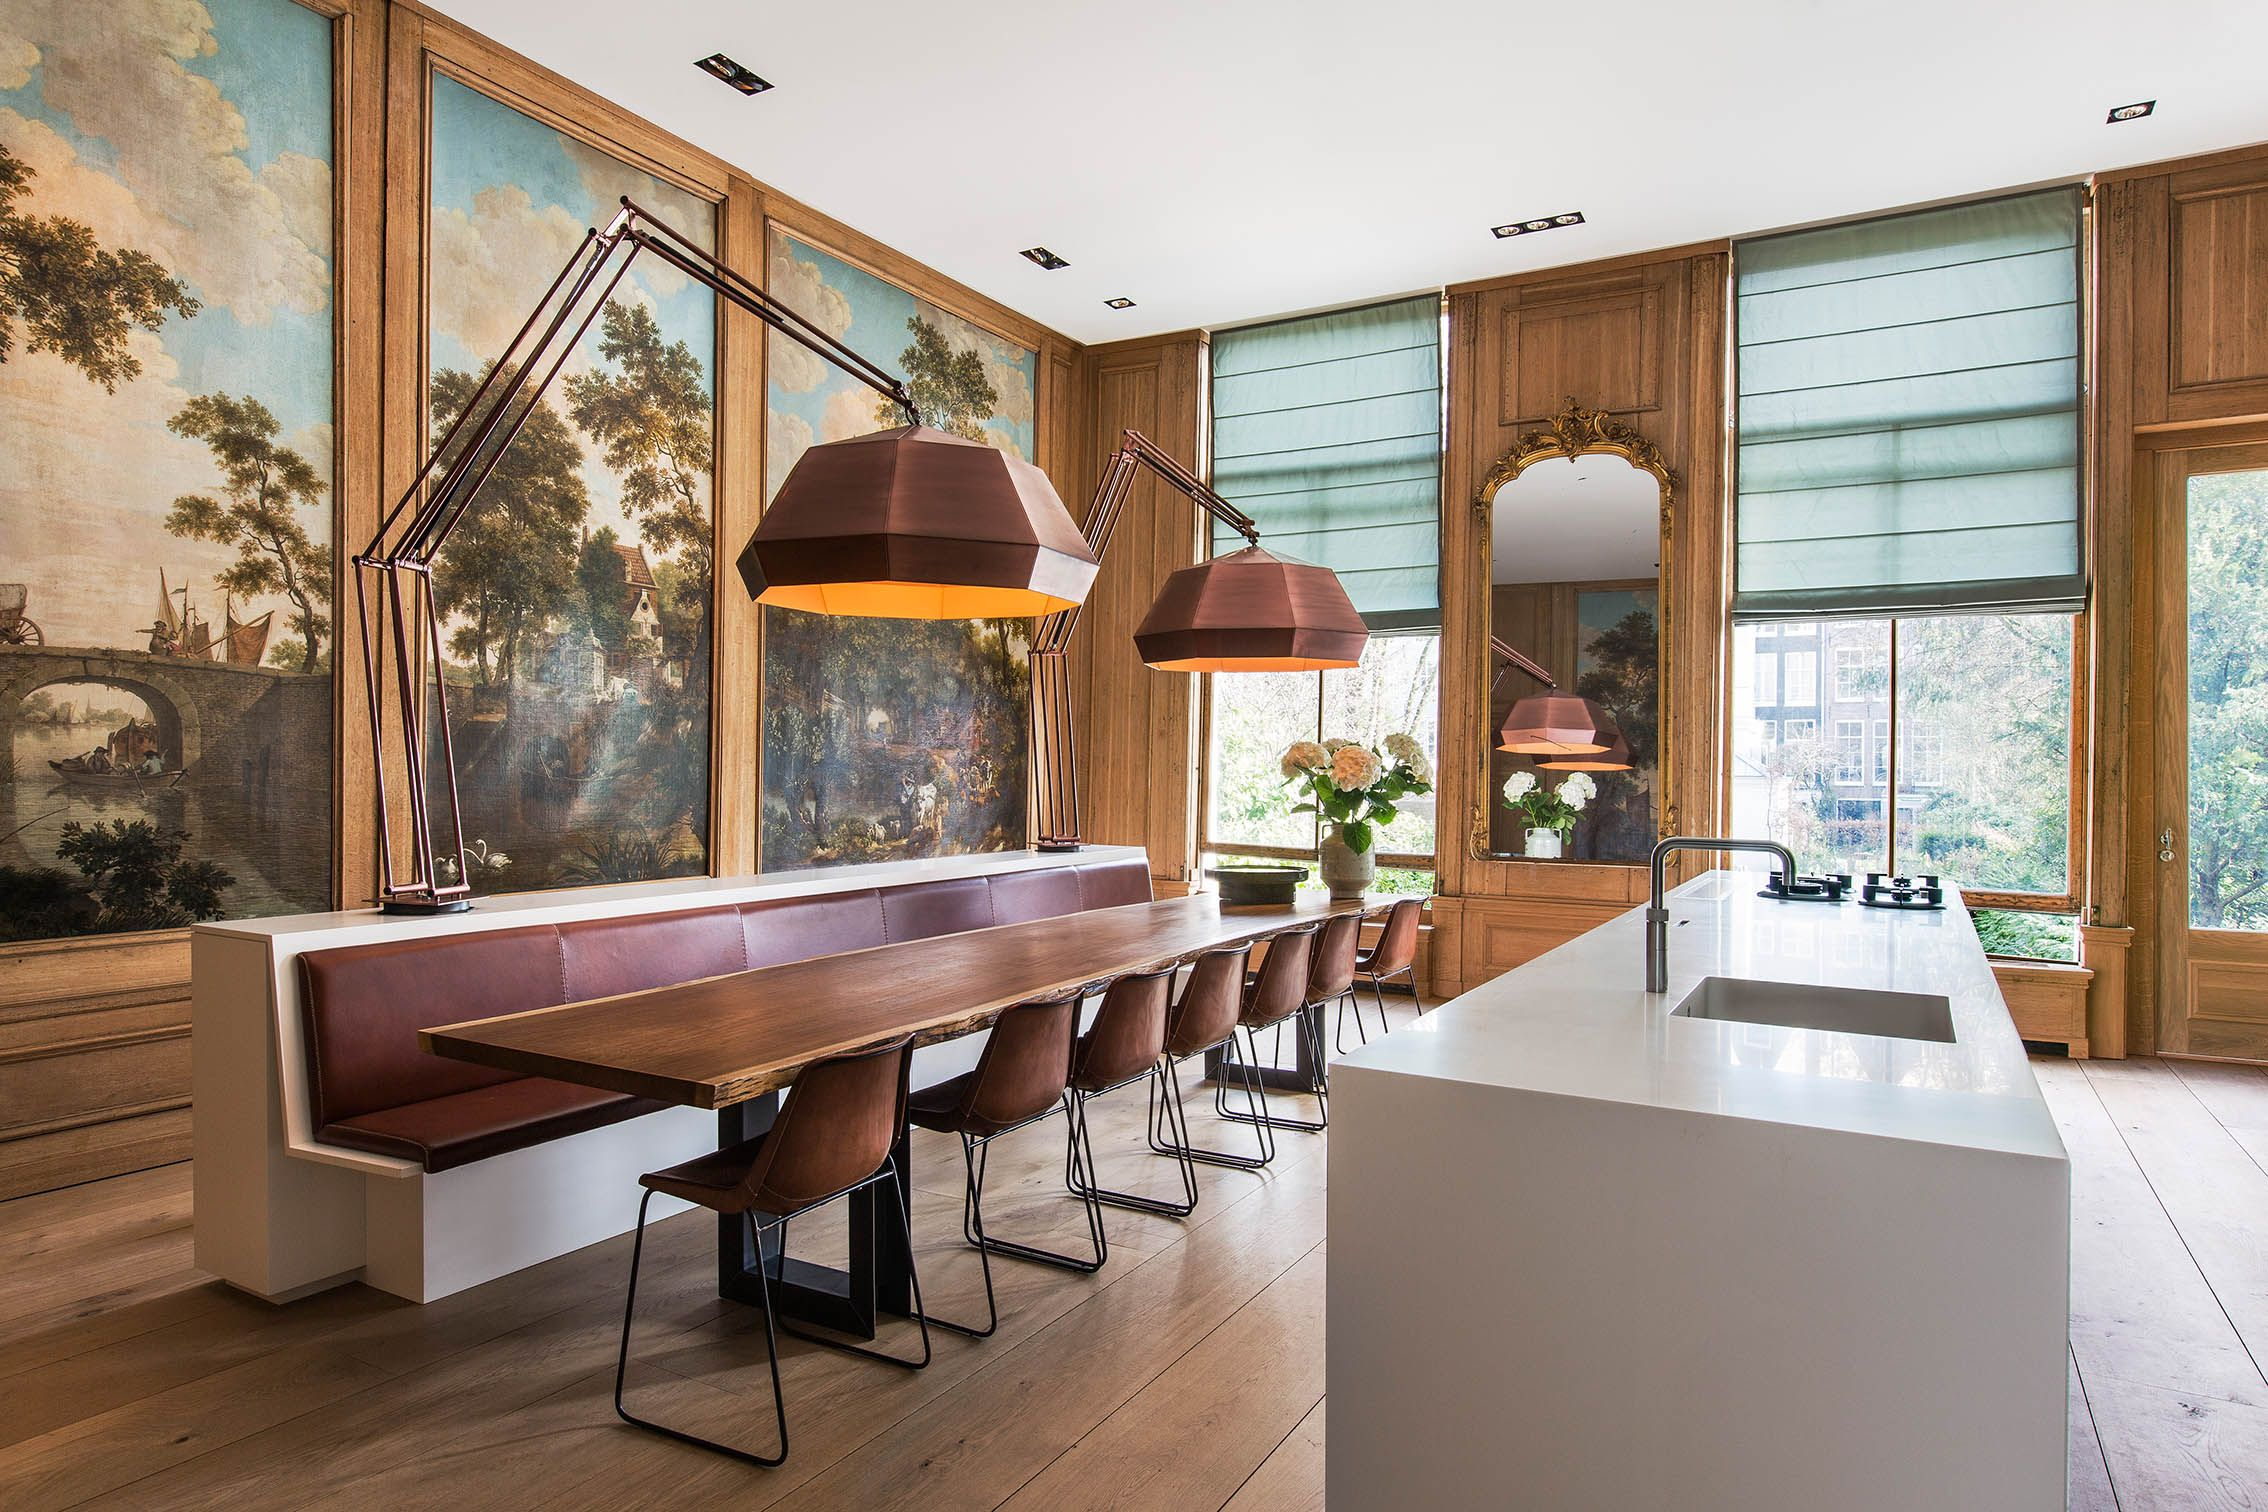 Studio ruim project herengracht every kind of design